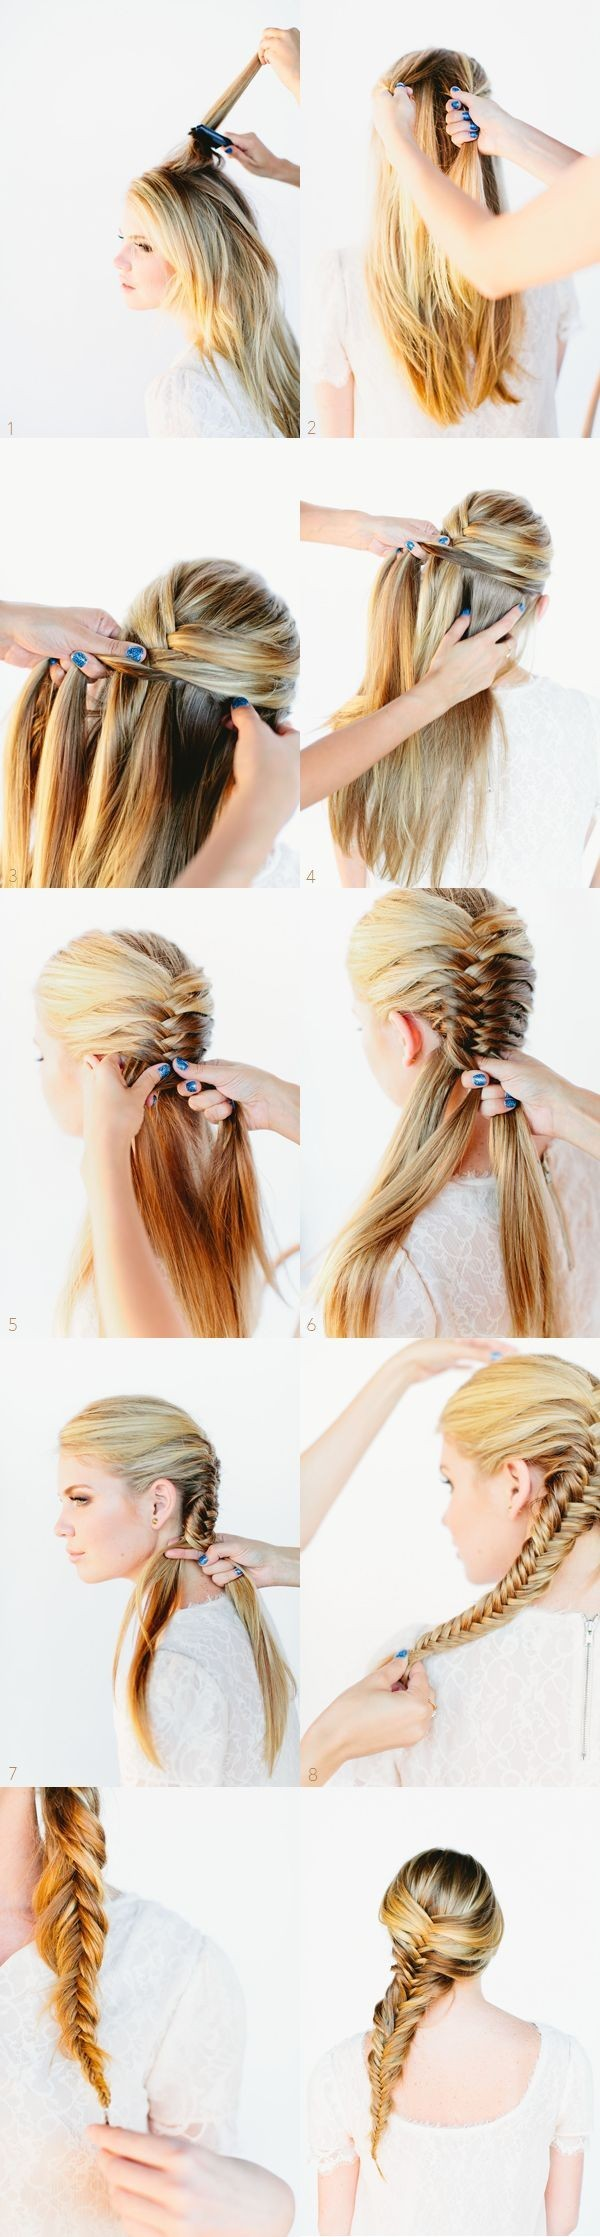 Braided-Hairstyles-Ideas-Messy-Side-Braids-Tutorial Hair Styling For Girls Step By Step Tutorial Part